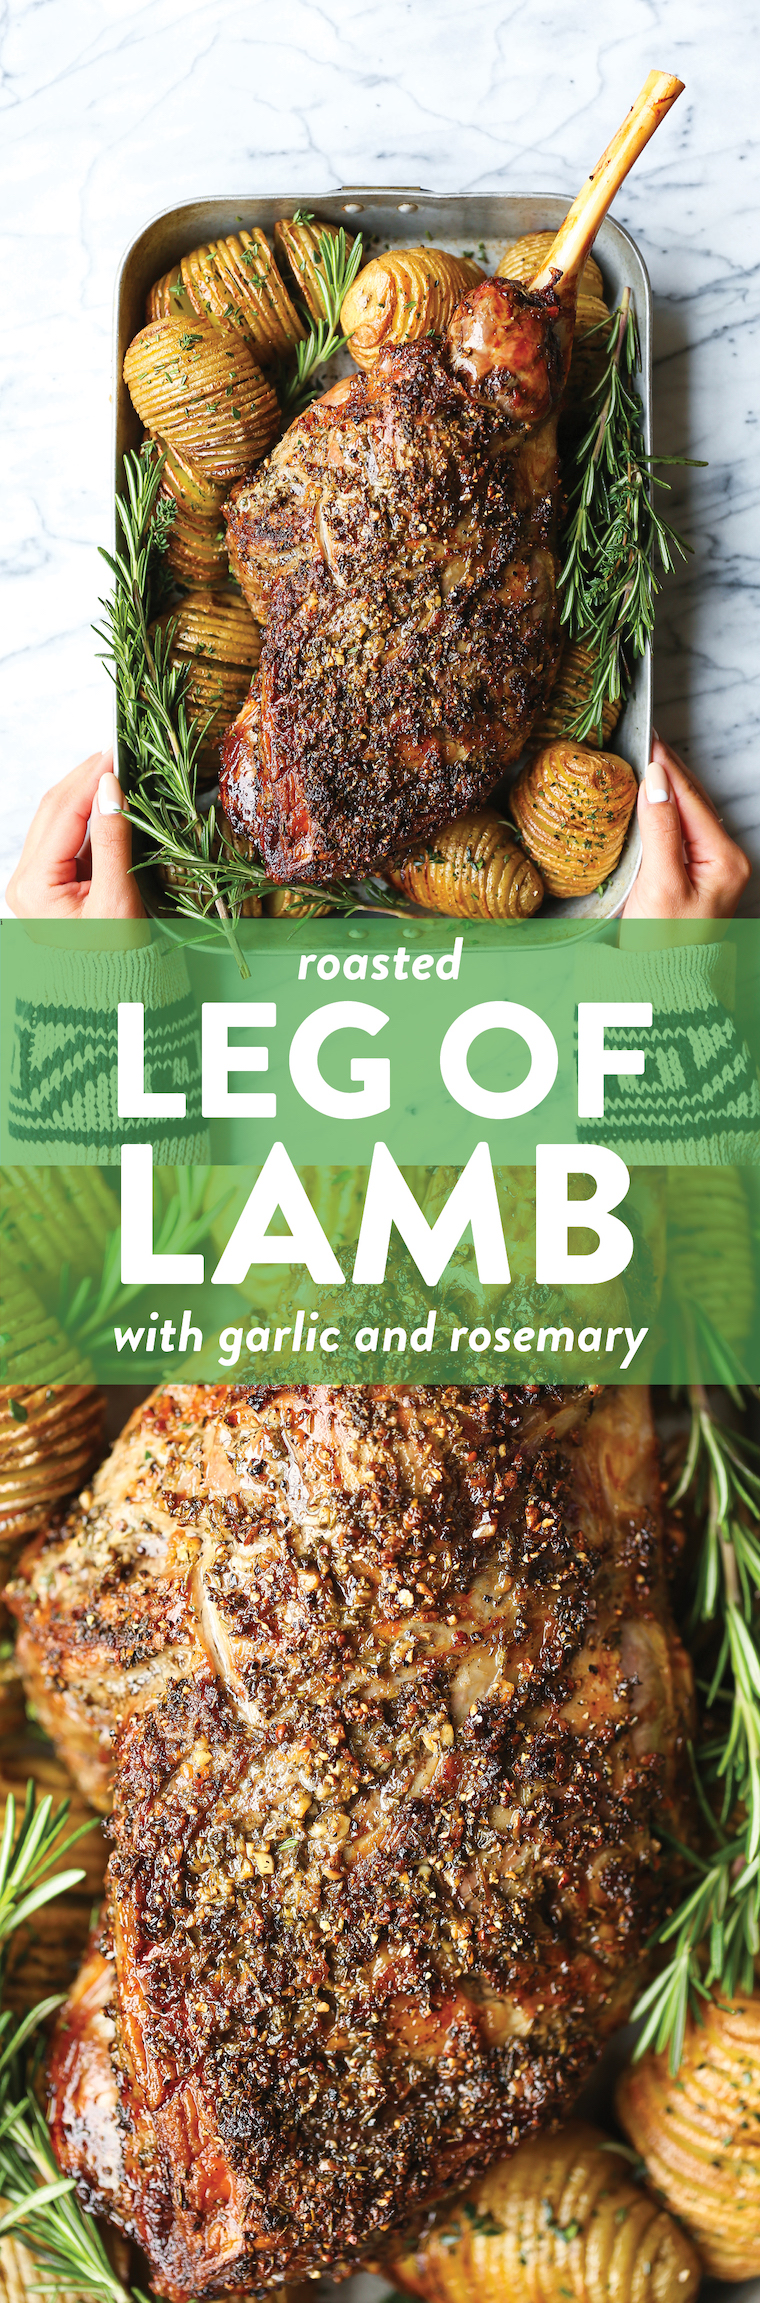 Roasted Leg of Lamb - This recipe is so good yet it doesn't require too much time, effort or ingredients. It's easy & fool-proof, even for you first-timers!